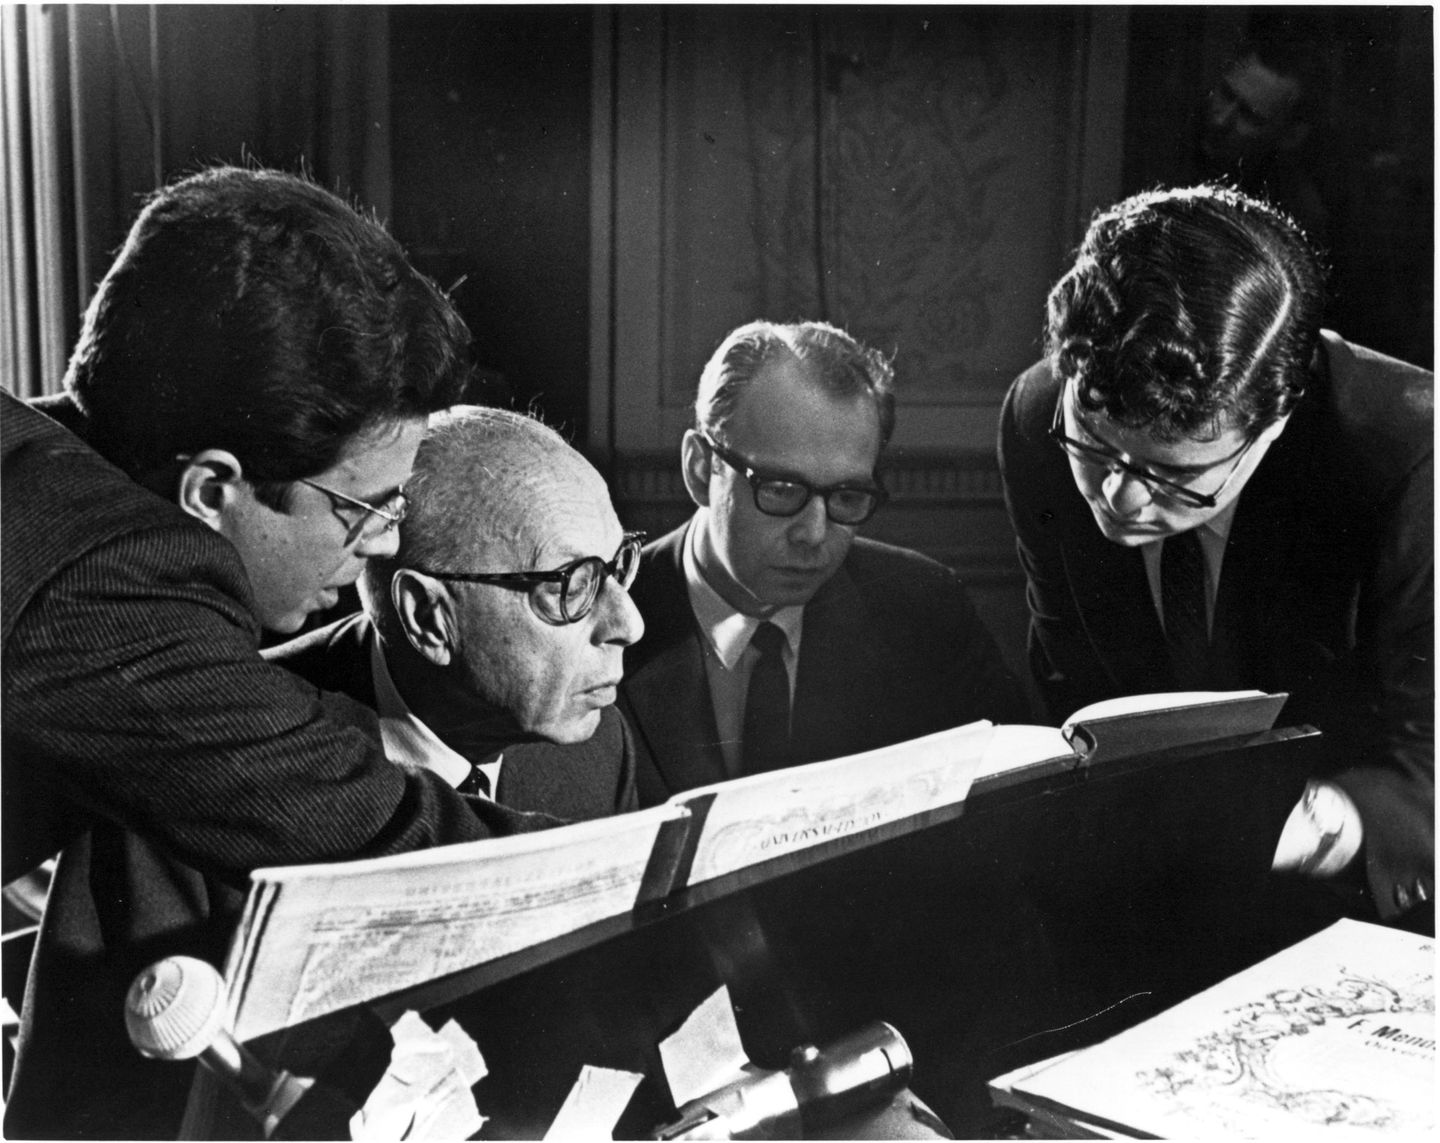 Cleveland Orchestra conductor George Szell (second from left) with Cleveland Orchestra associates (left to right) Stephen Portman, Michael Charry, and James Levine in 1966.